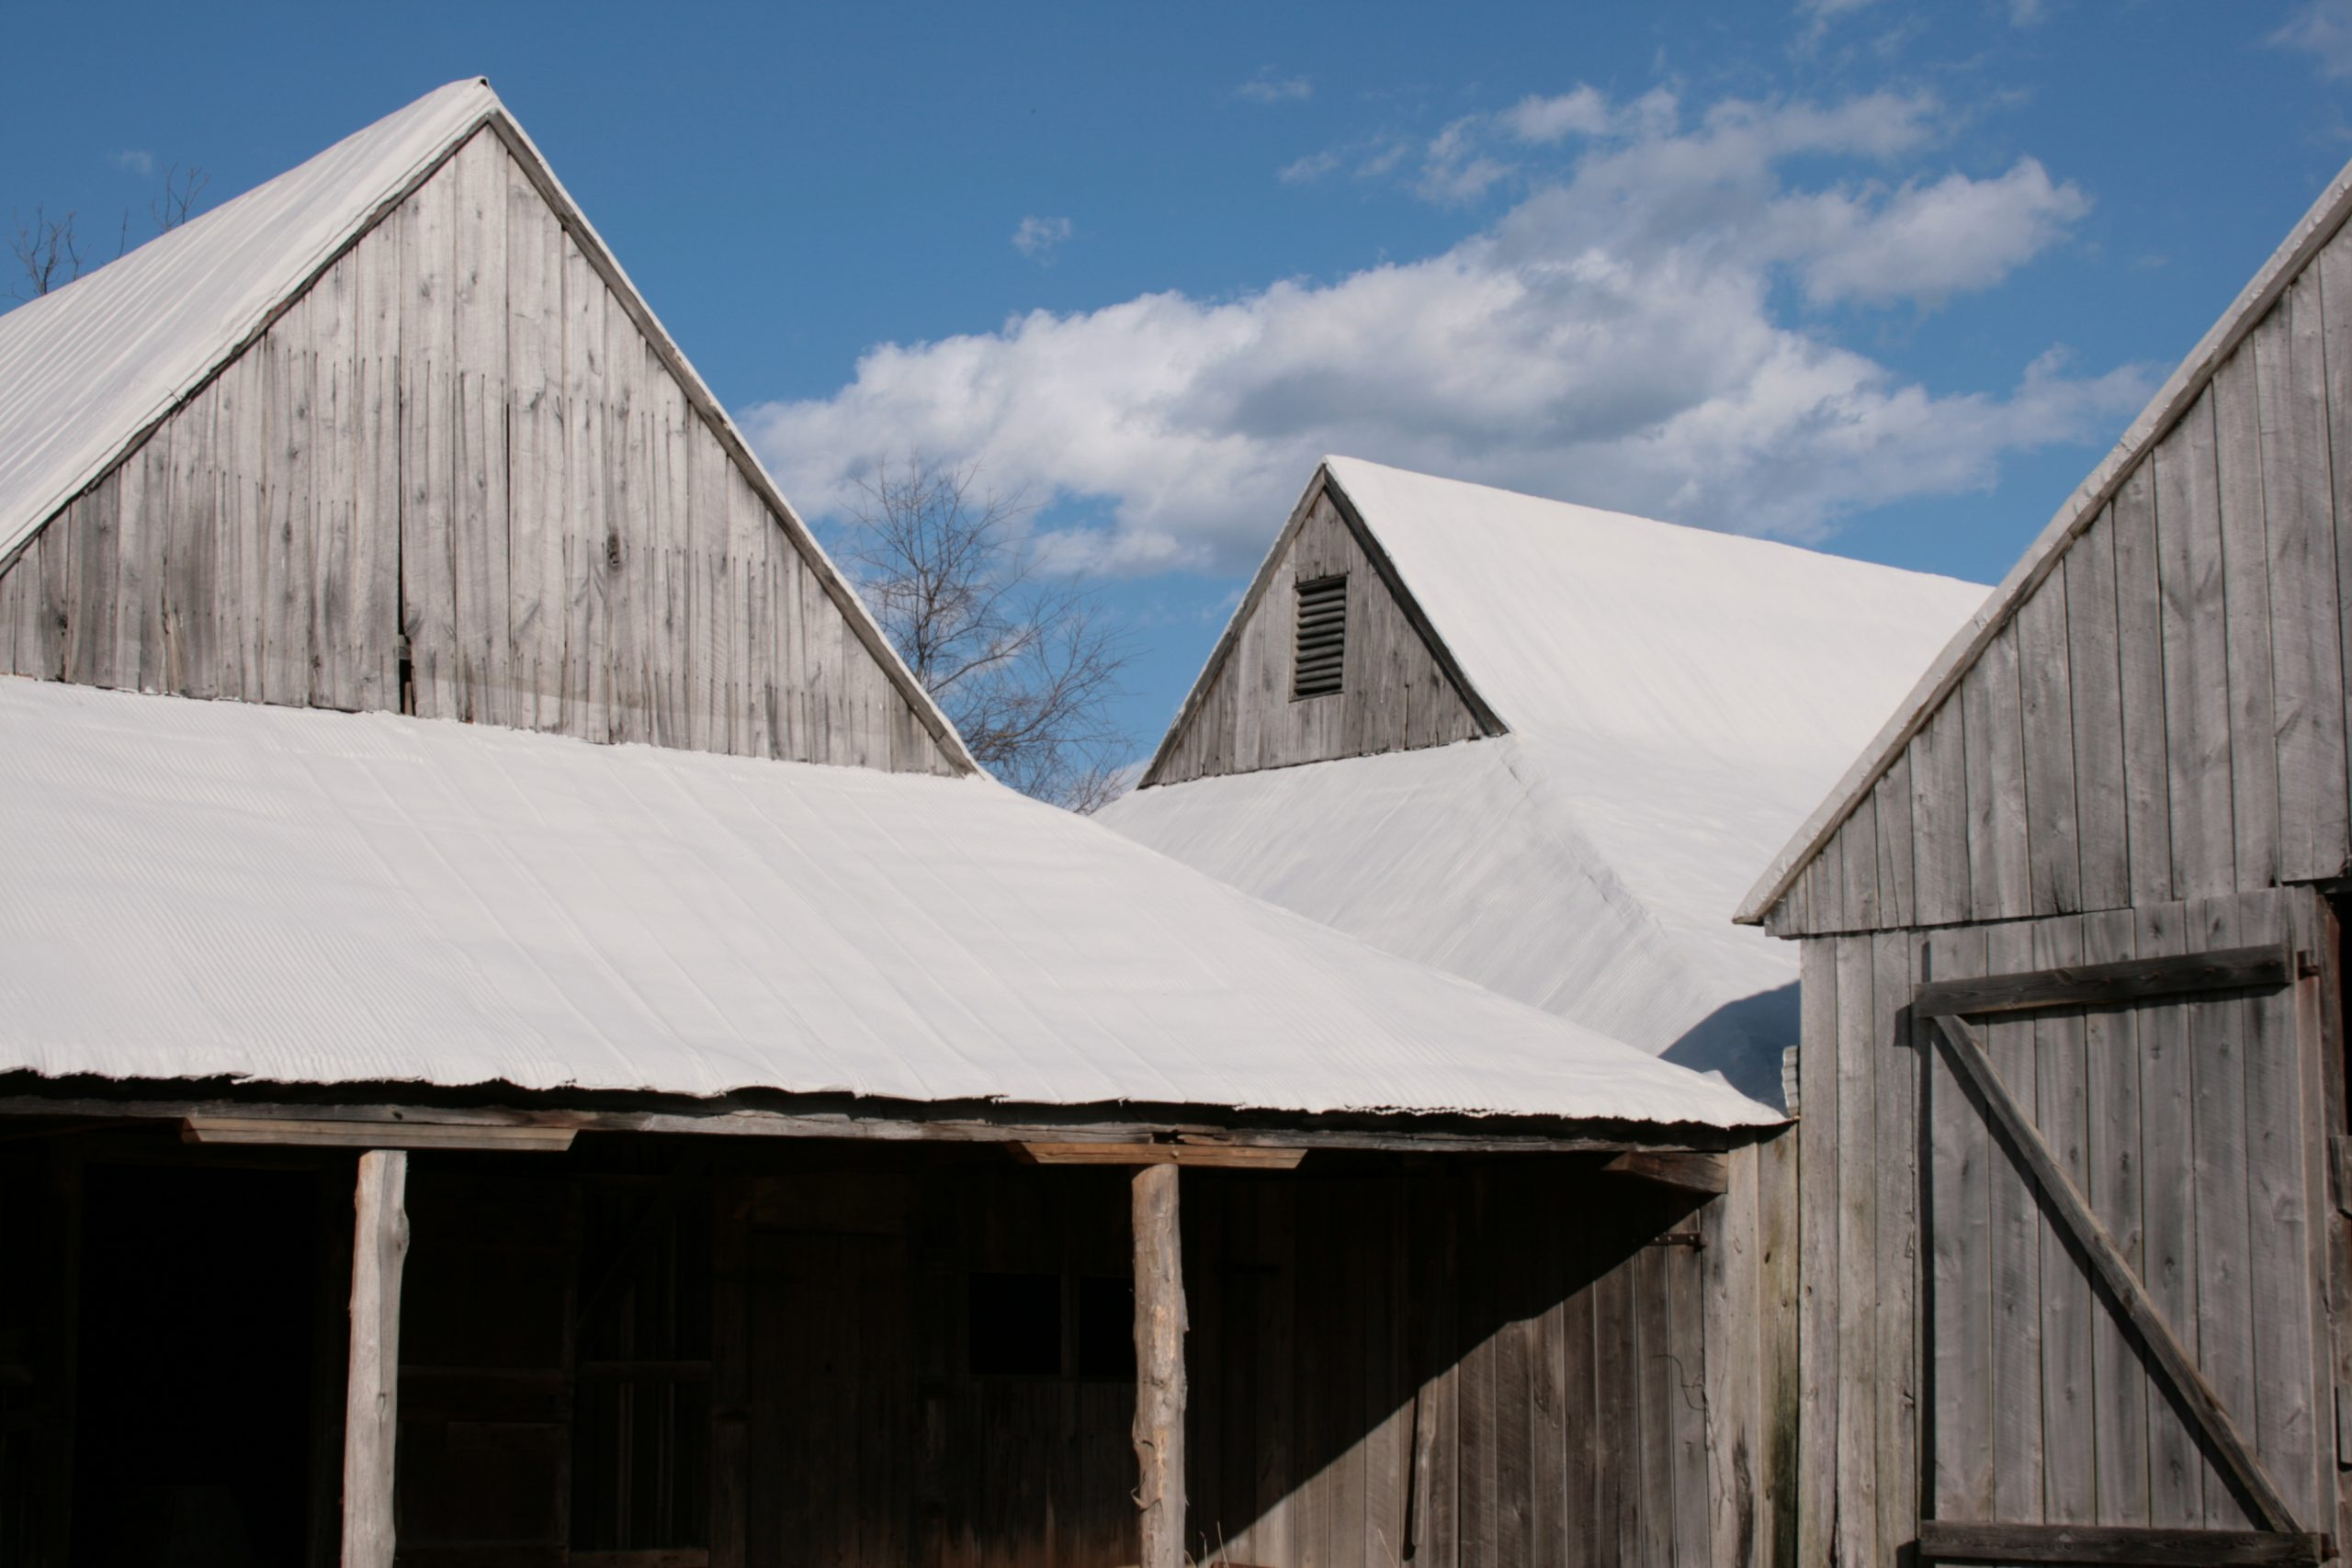 An image of the Bond-Simms Barn. The complex was constructed over 50 years starting sometime between 1835 and 1845.